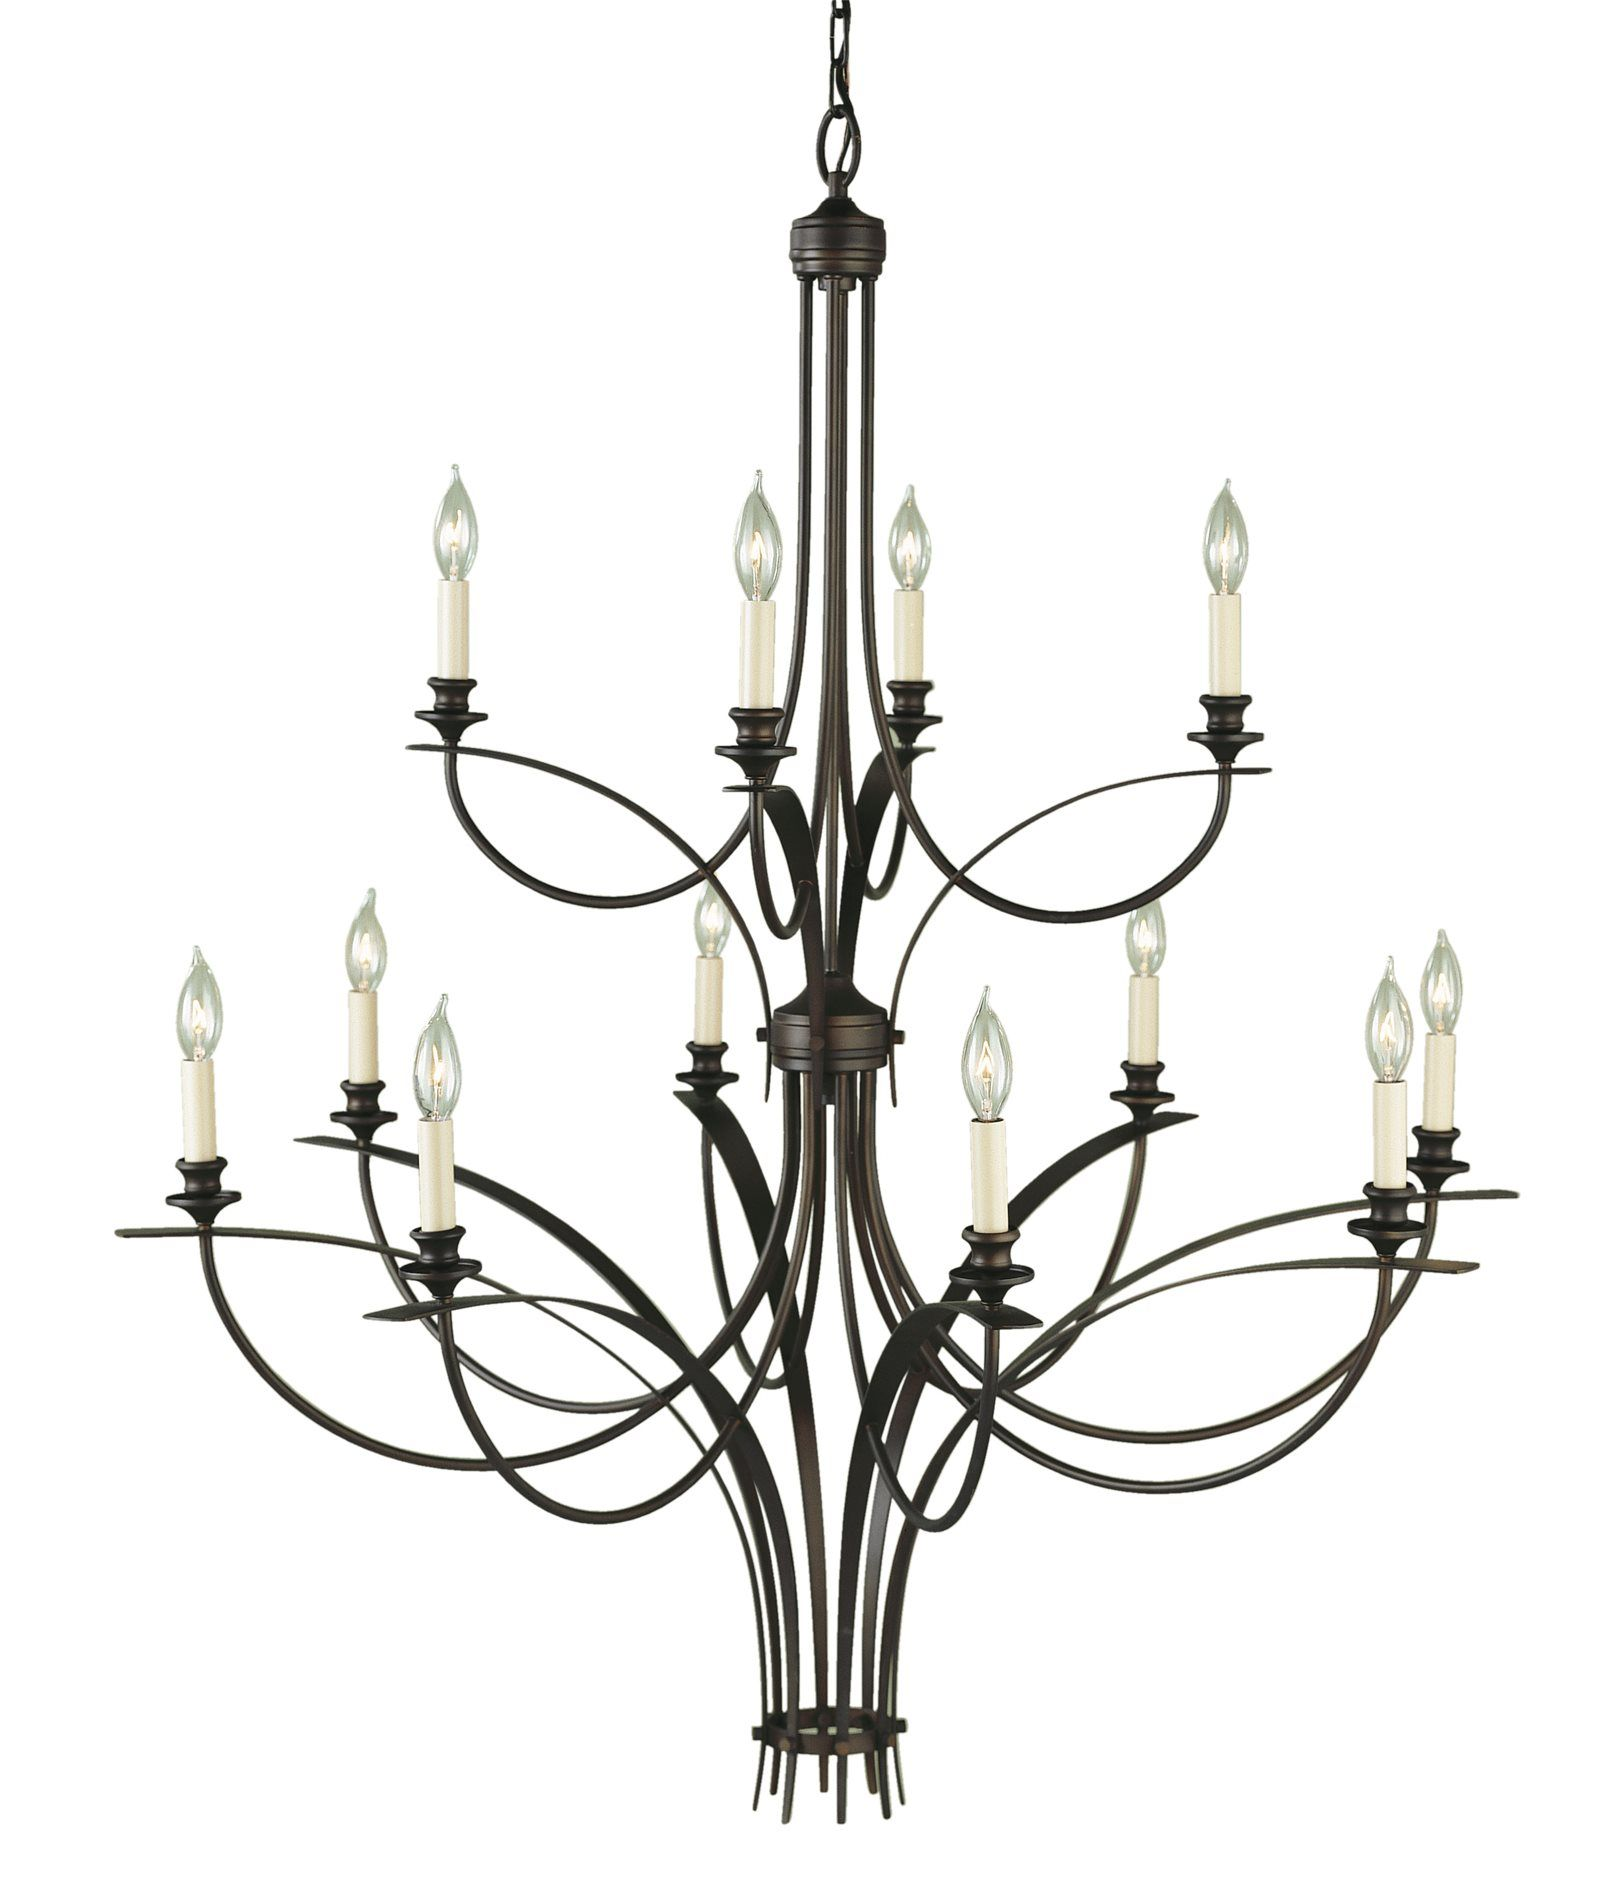 South Shore Decorating: Murray Feiss F1891/8+4ORB Boulevard Transitional Chandelier MRF-F1891-8-4ORB